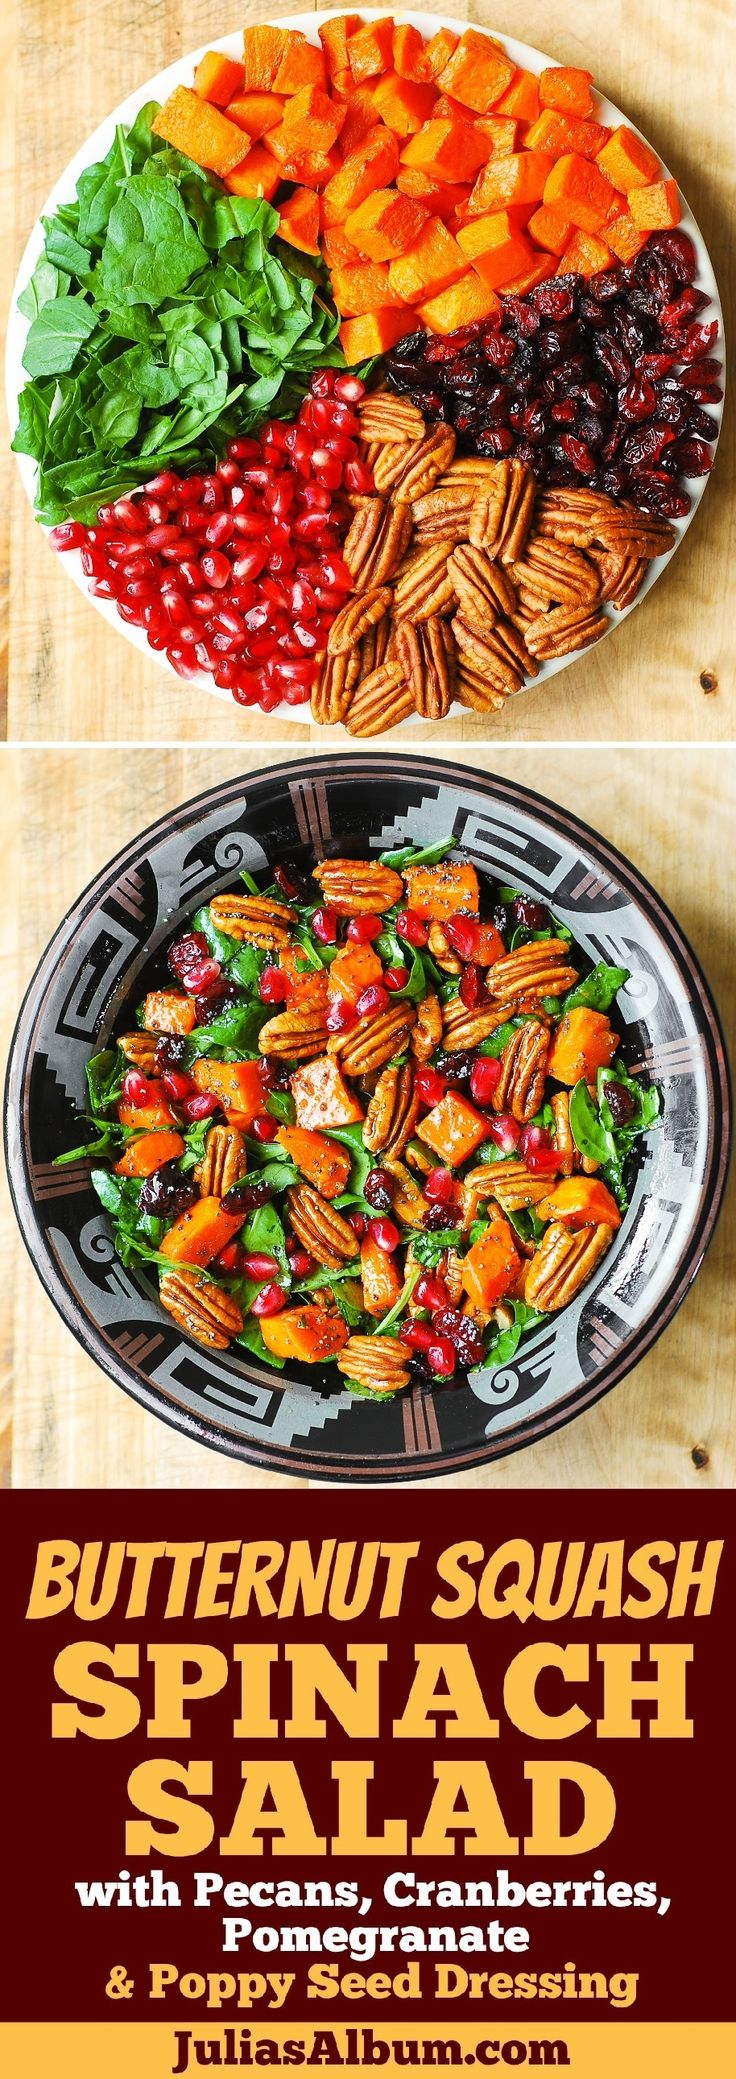 Butternut Squash Spinach Salad with Pecans, Cranberries, Pomegranate with Poppy Seed Honey-Lime Dressing. Thanksgiving, holiday side dish recipe.